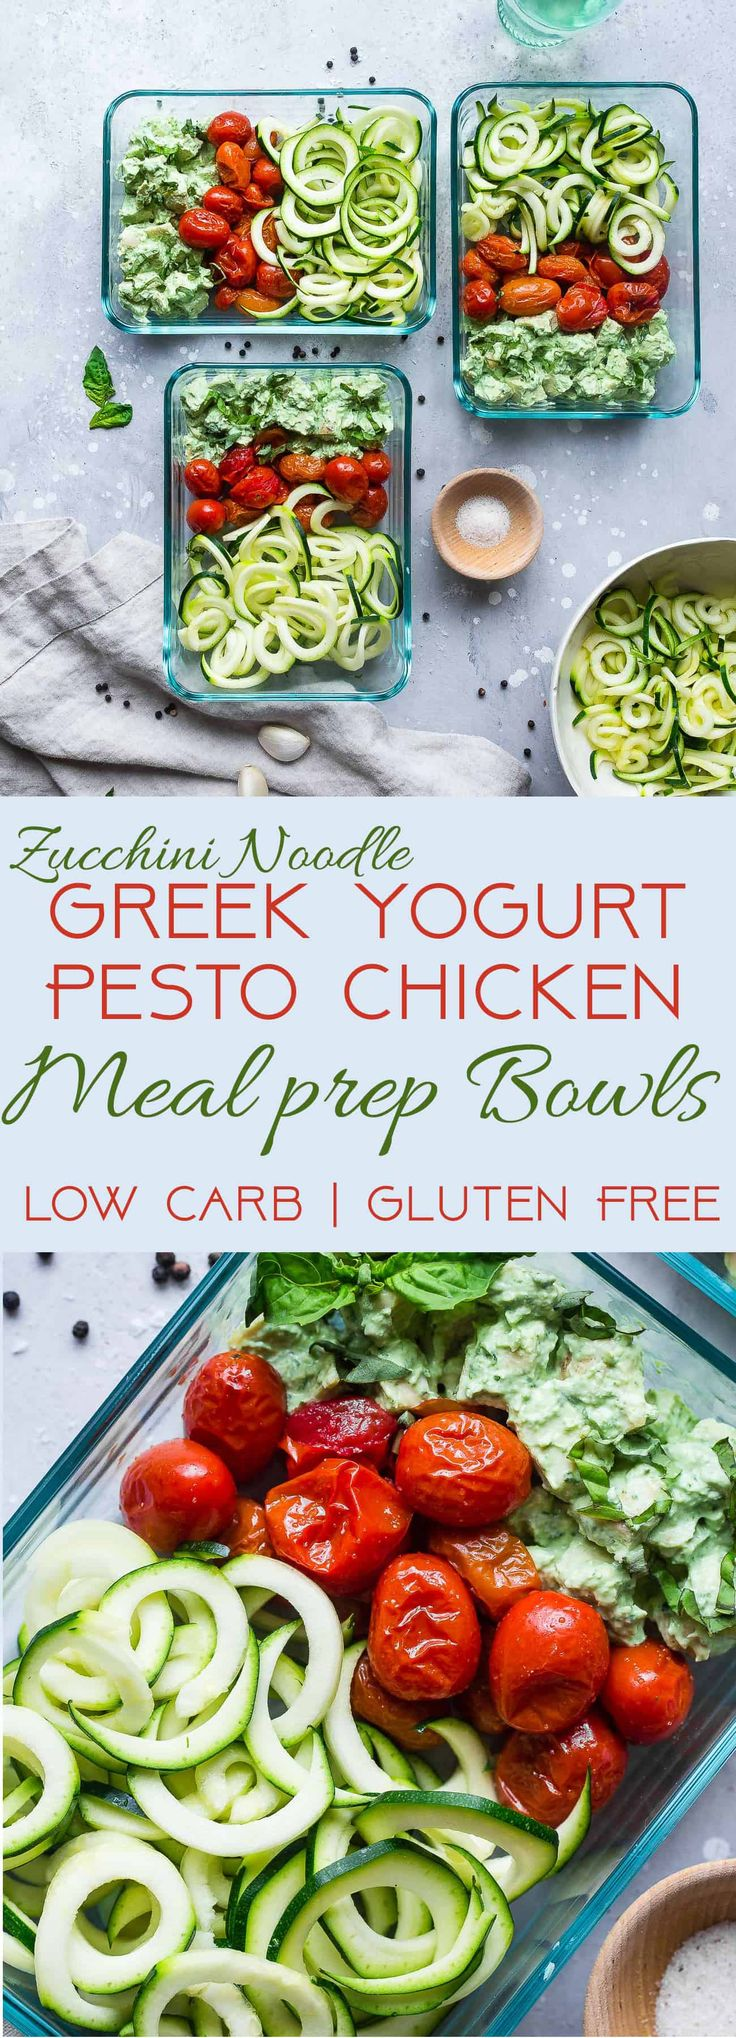 Creamy Basil Pesto Chicen Pasta Meal Prep Bowls - boneless skinless chicken breasts, olive oil (might reduce), pesto (plain non-fat Greek yogurt, fresh basil, fresh minced garlic, olive oil, sea salt, pepper), zucchinis, sea salt, cherry tomatoes